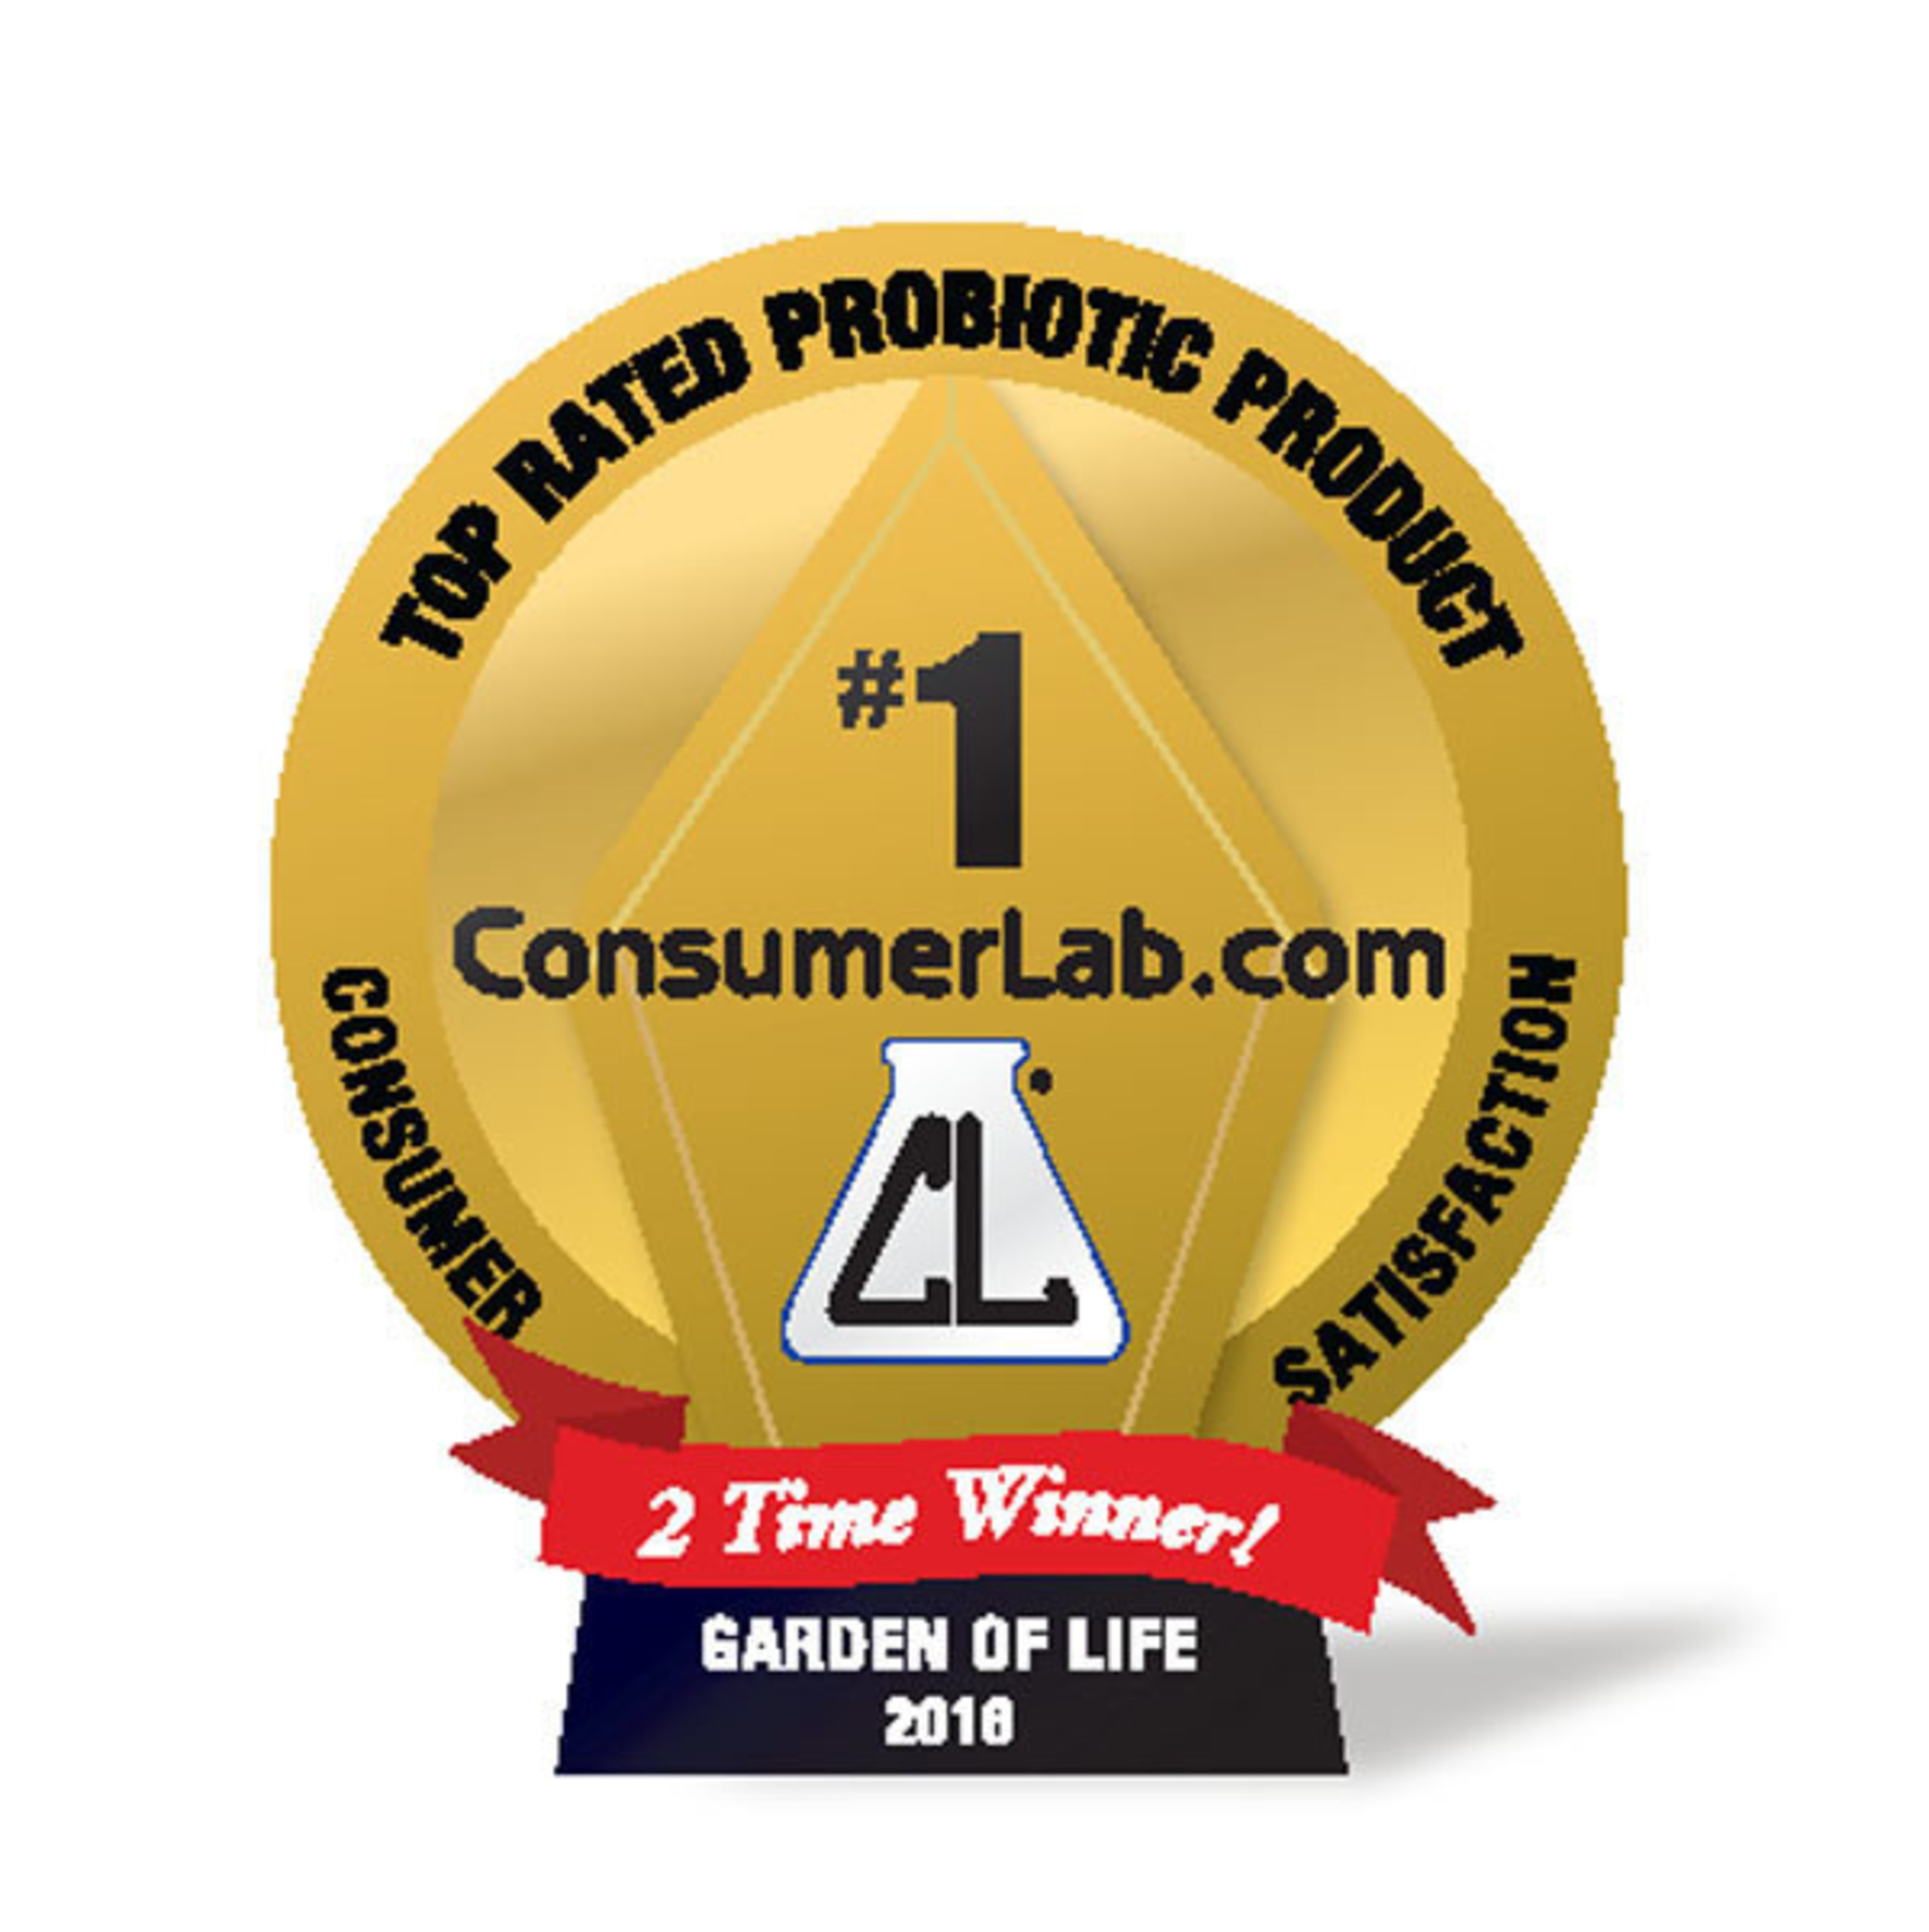 Garden of Life has been named the #1 probiotics brand for customer satisfaction based on the ConsumerLab.com 2016 Survey of Vitamin & Supplement Users.